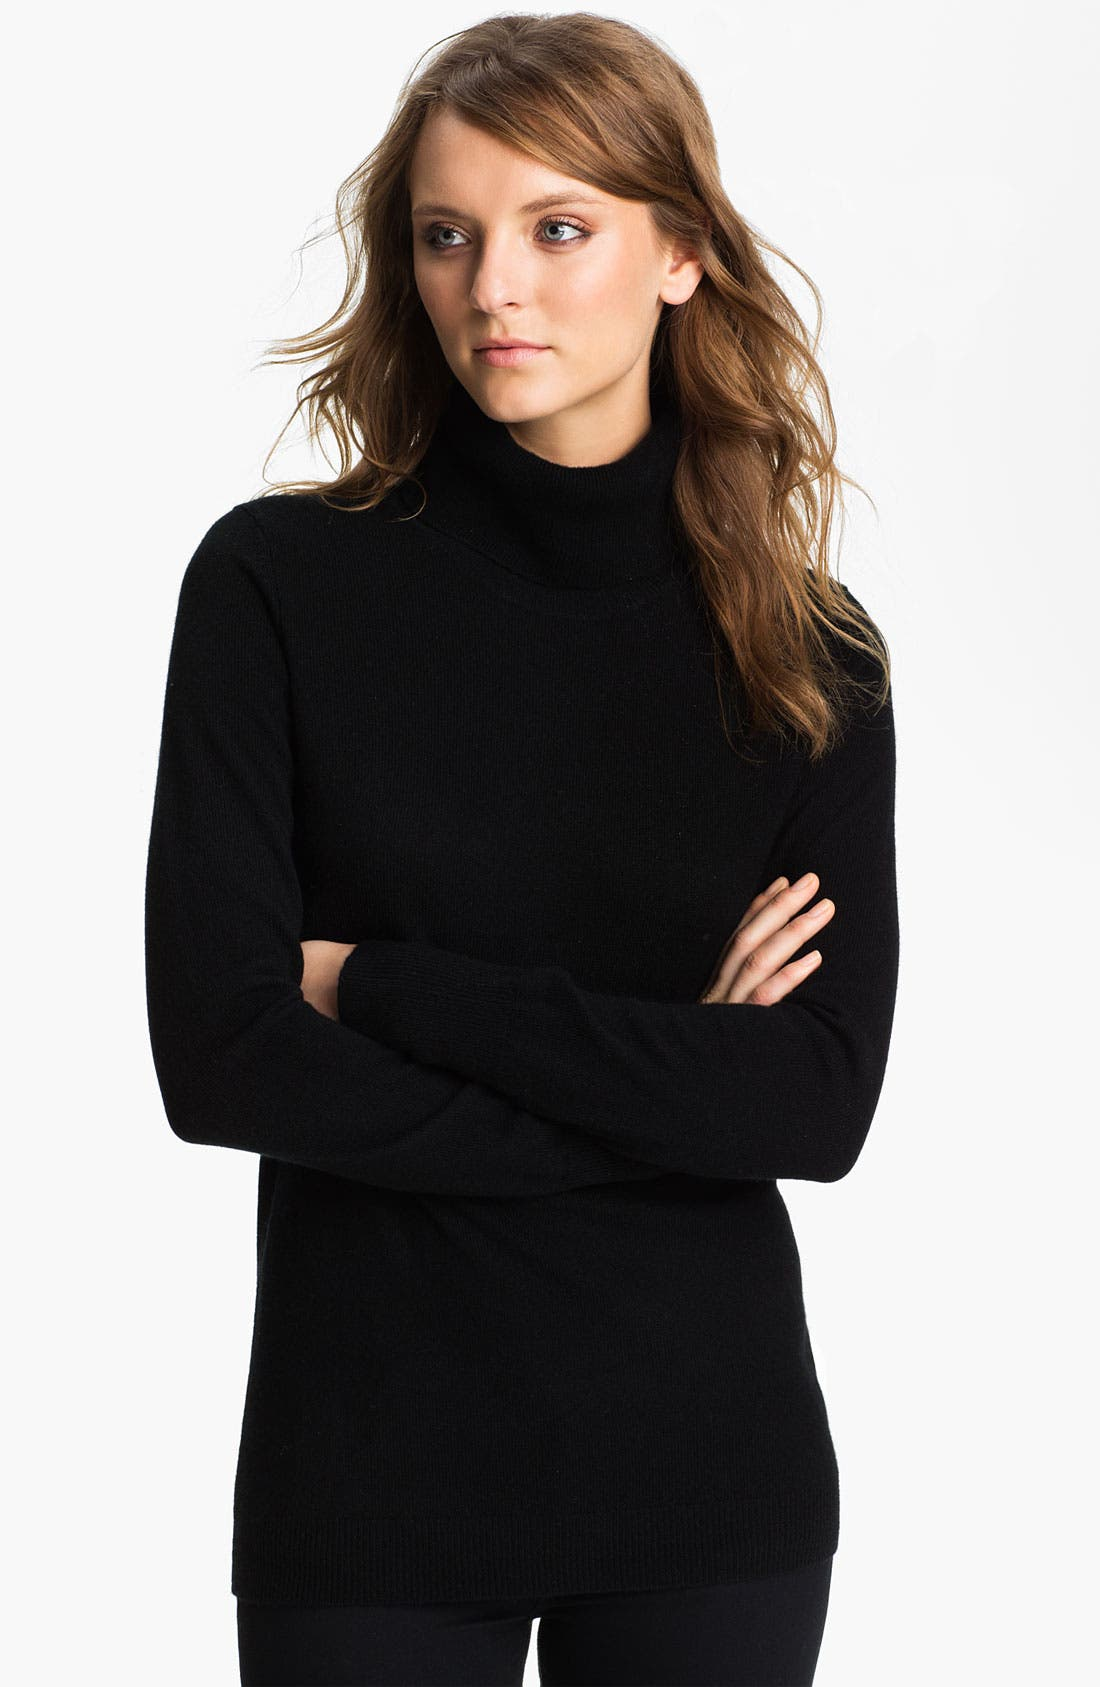 Alternate Image 1 Selected - Joie 'Maryse' Wool & Cashmere Turtleneck